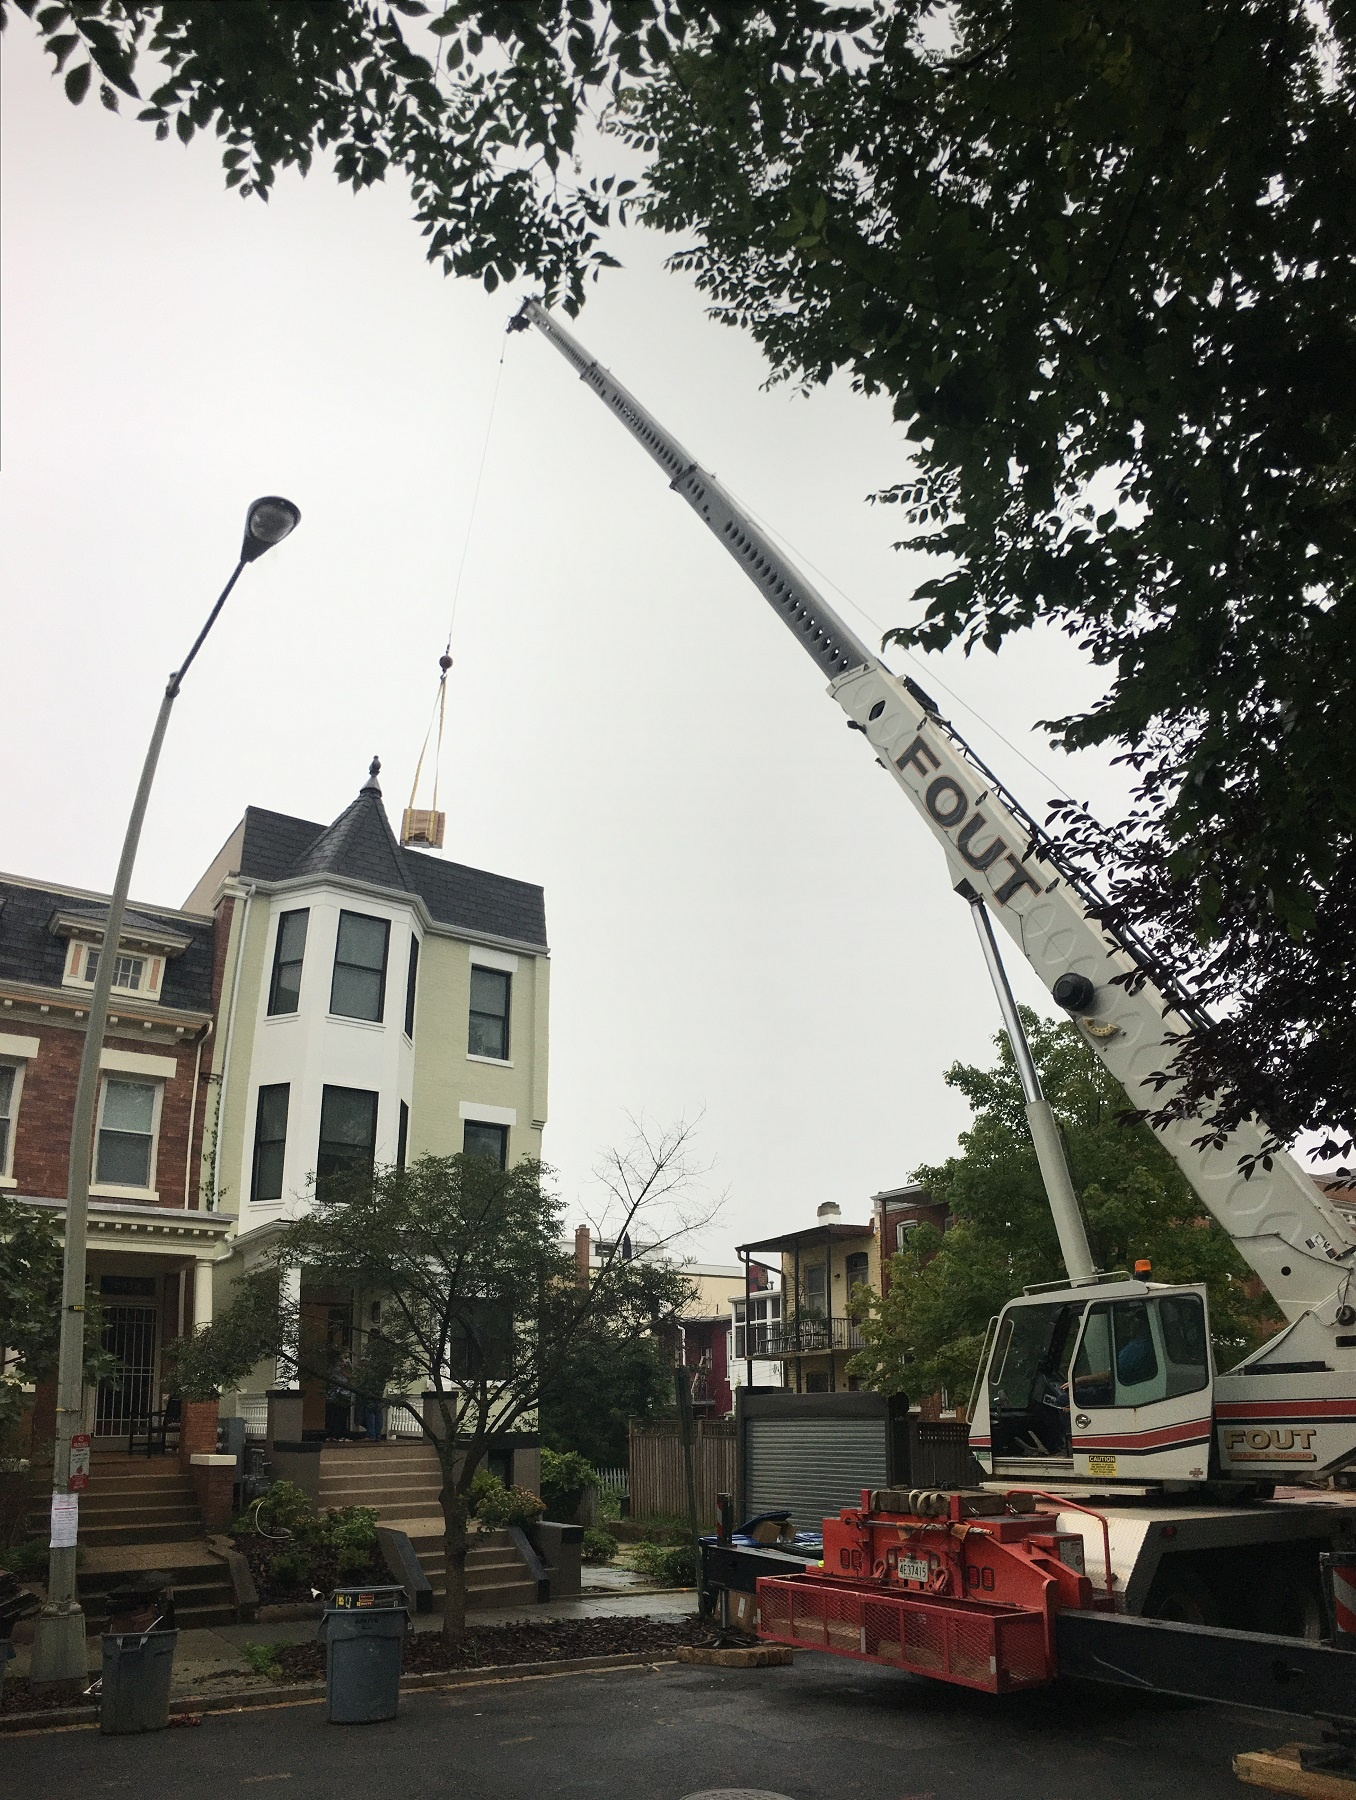 crane rental closing a street in Washington, DC to move supplies from the ground to the roof.